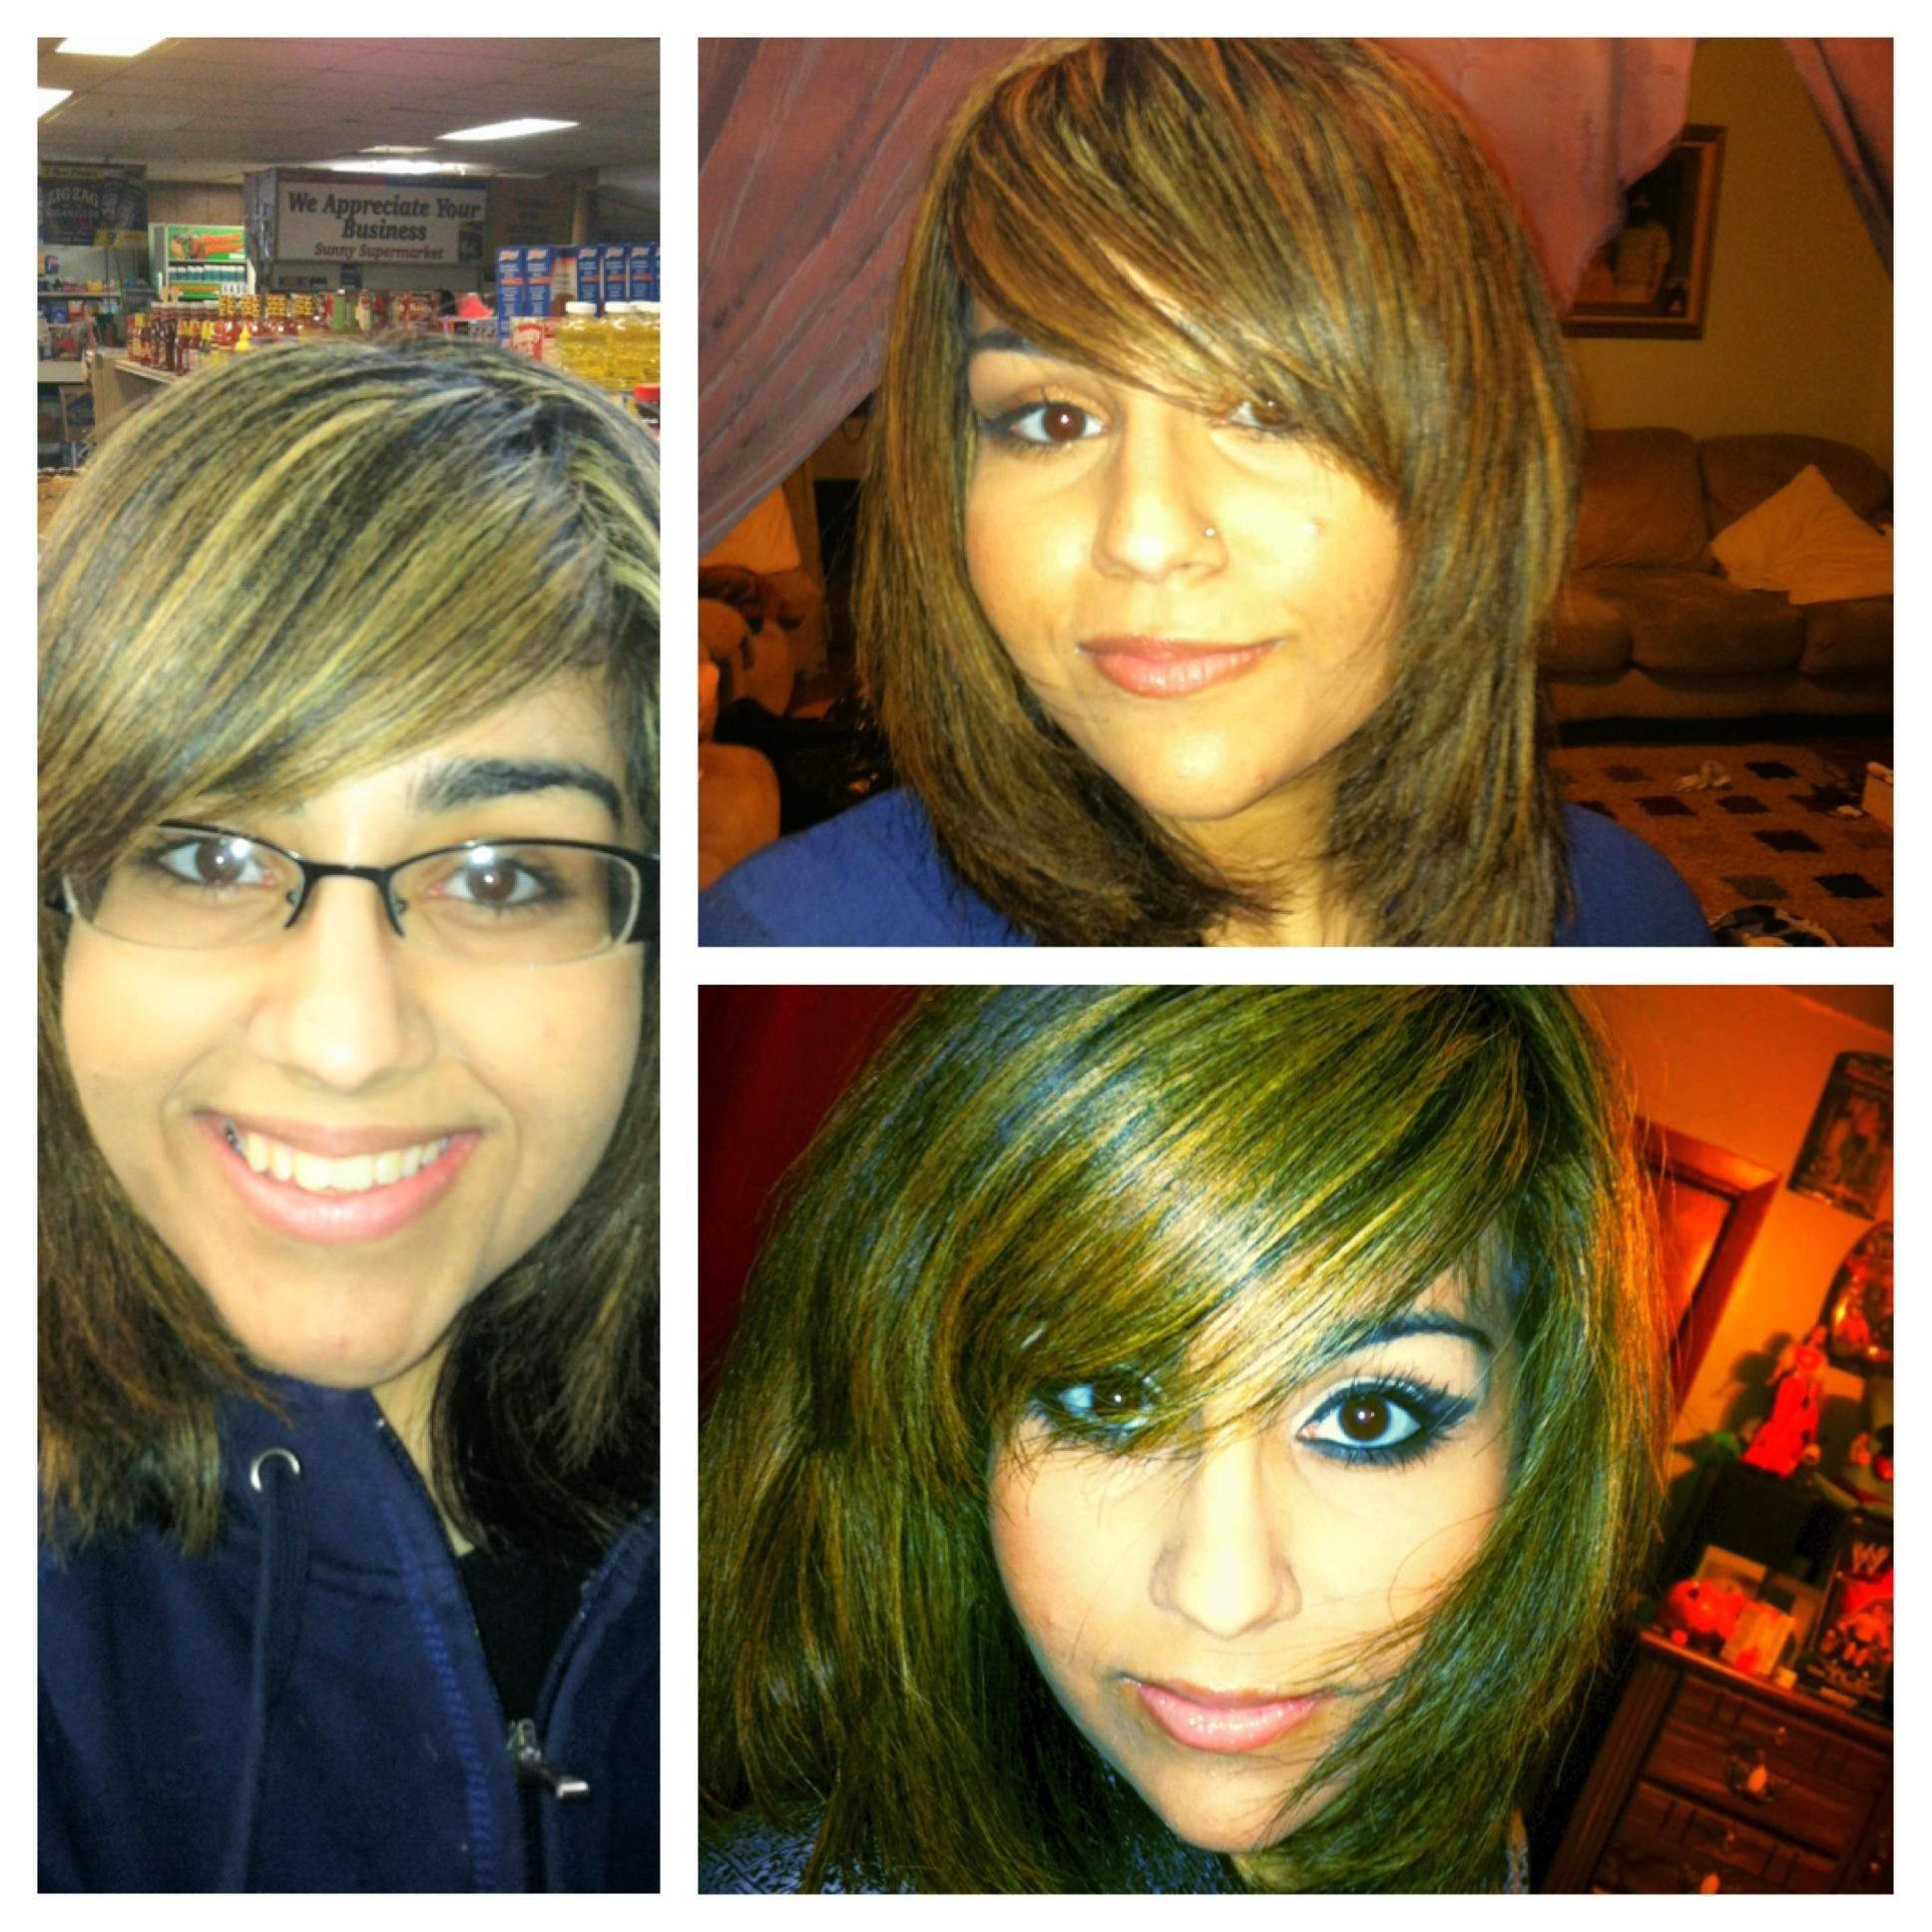 Ruby's before/ after daytime and evening look  - image 1 - student project